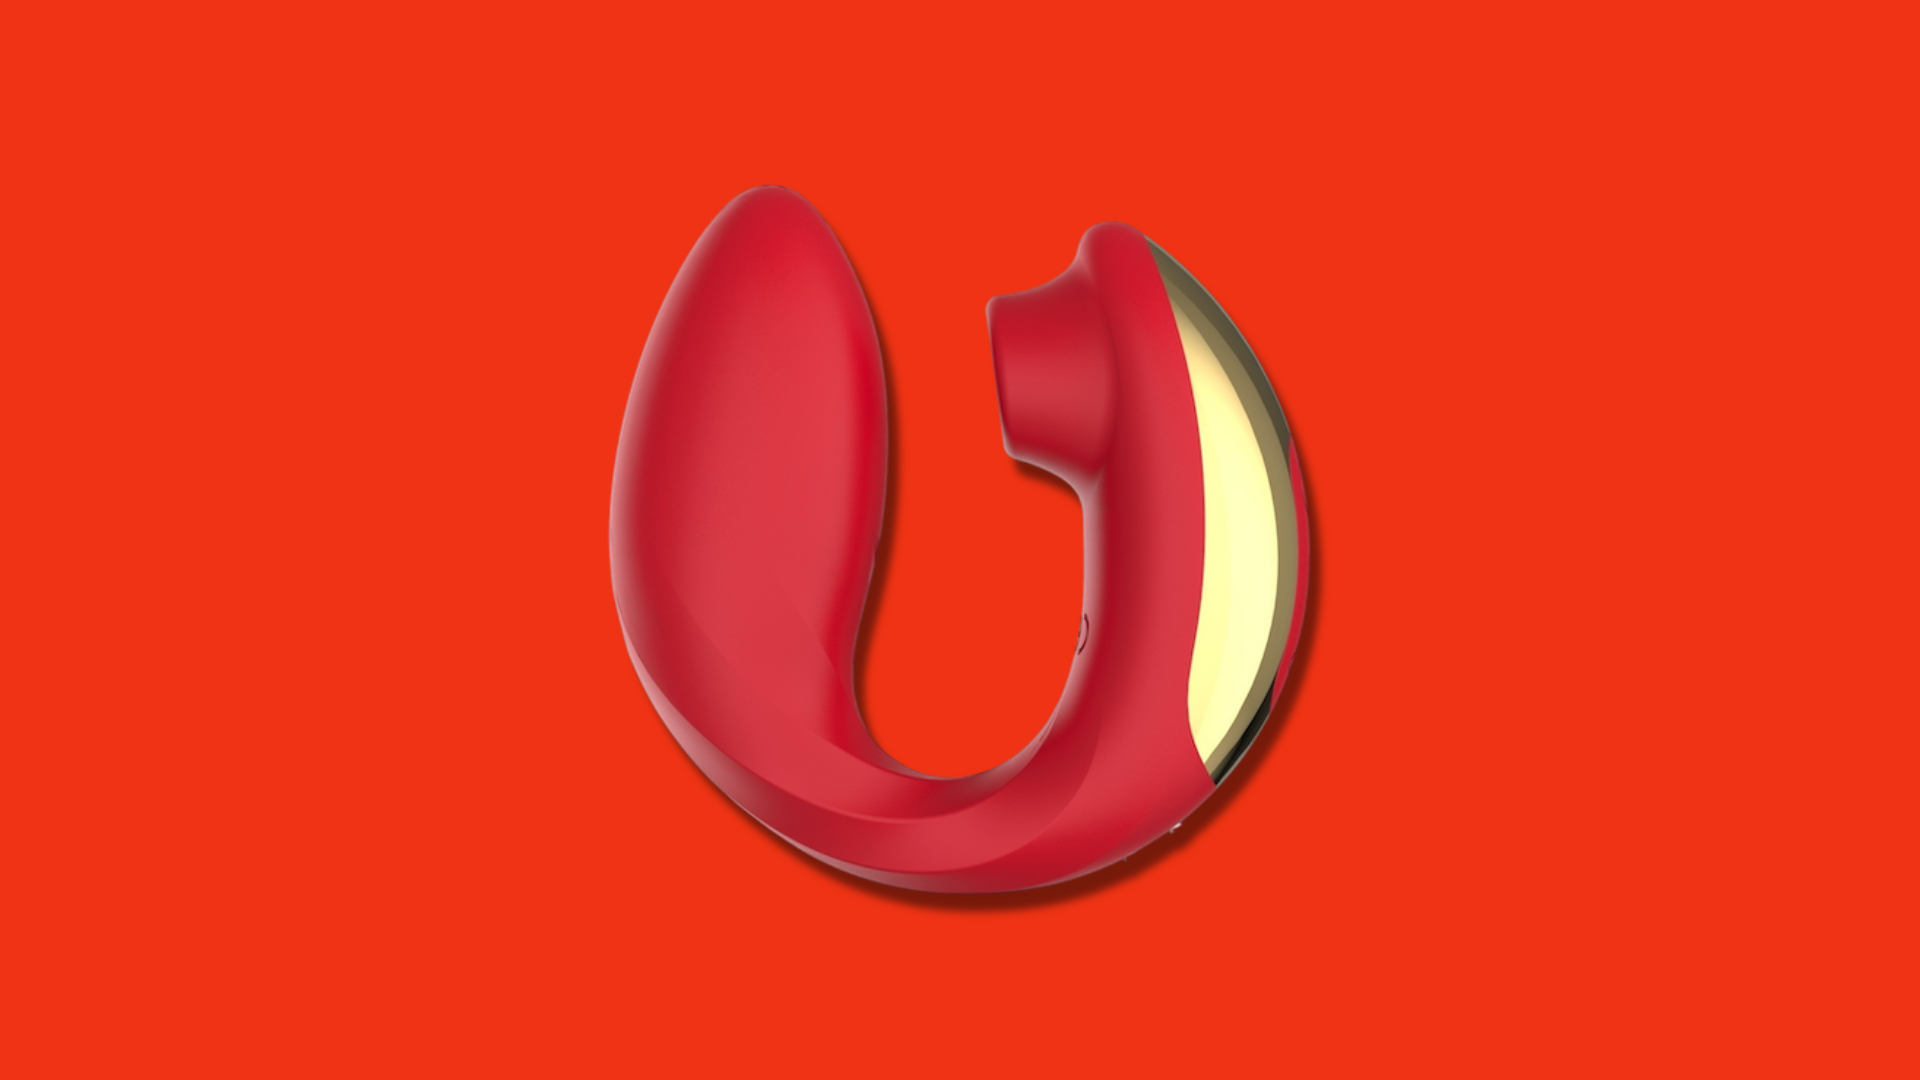 A red curved vibrator with gold accents on a red background.